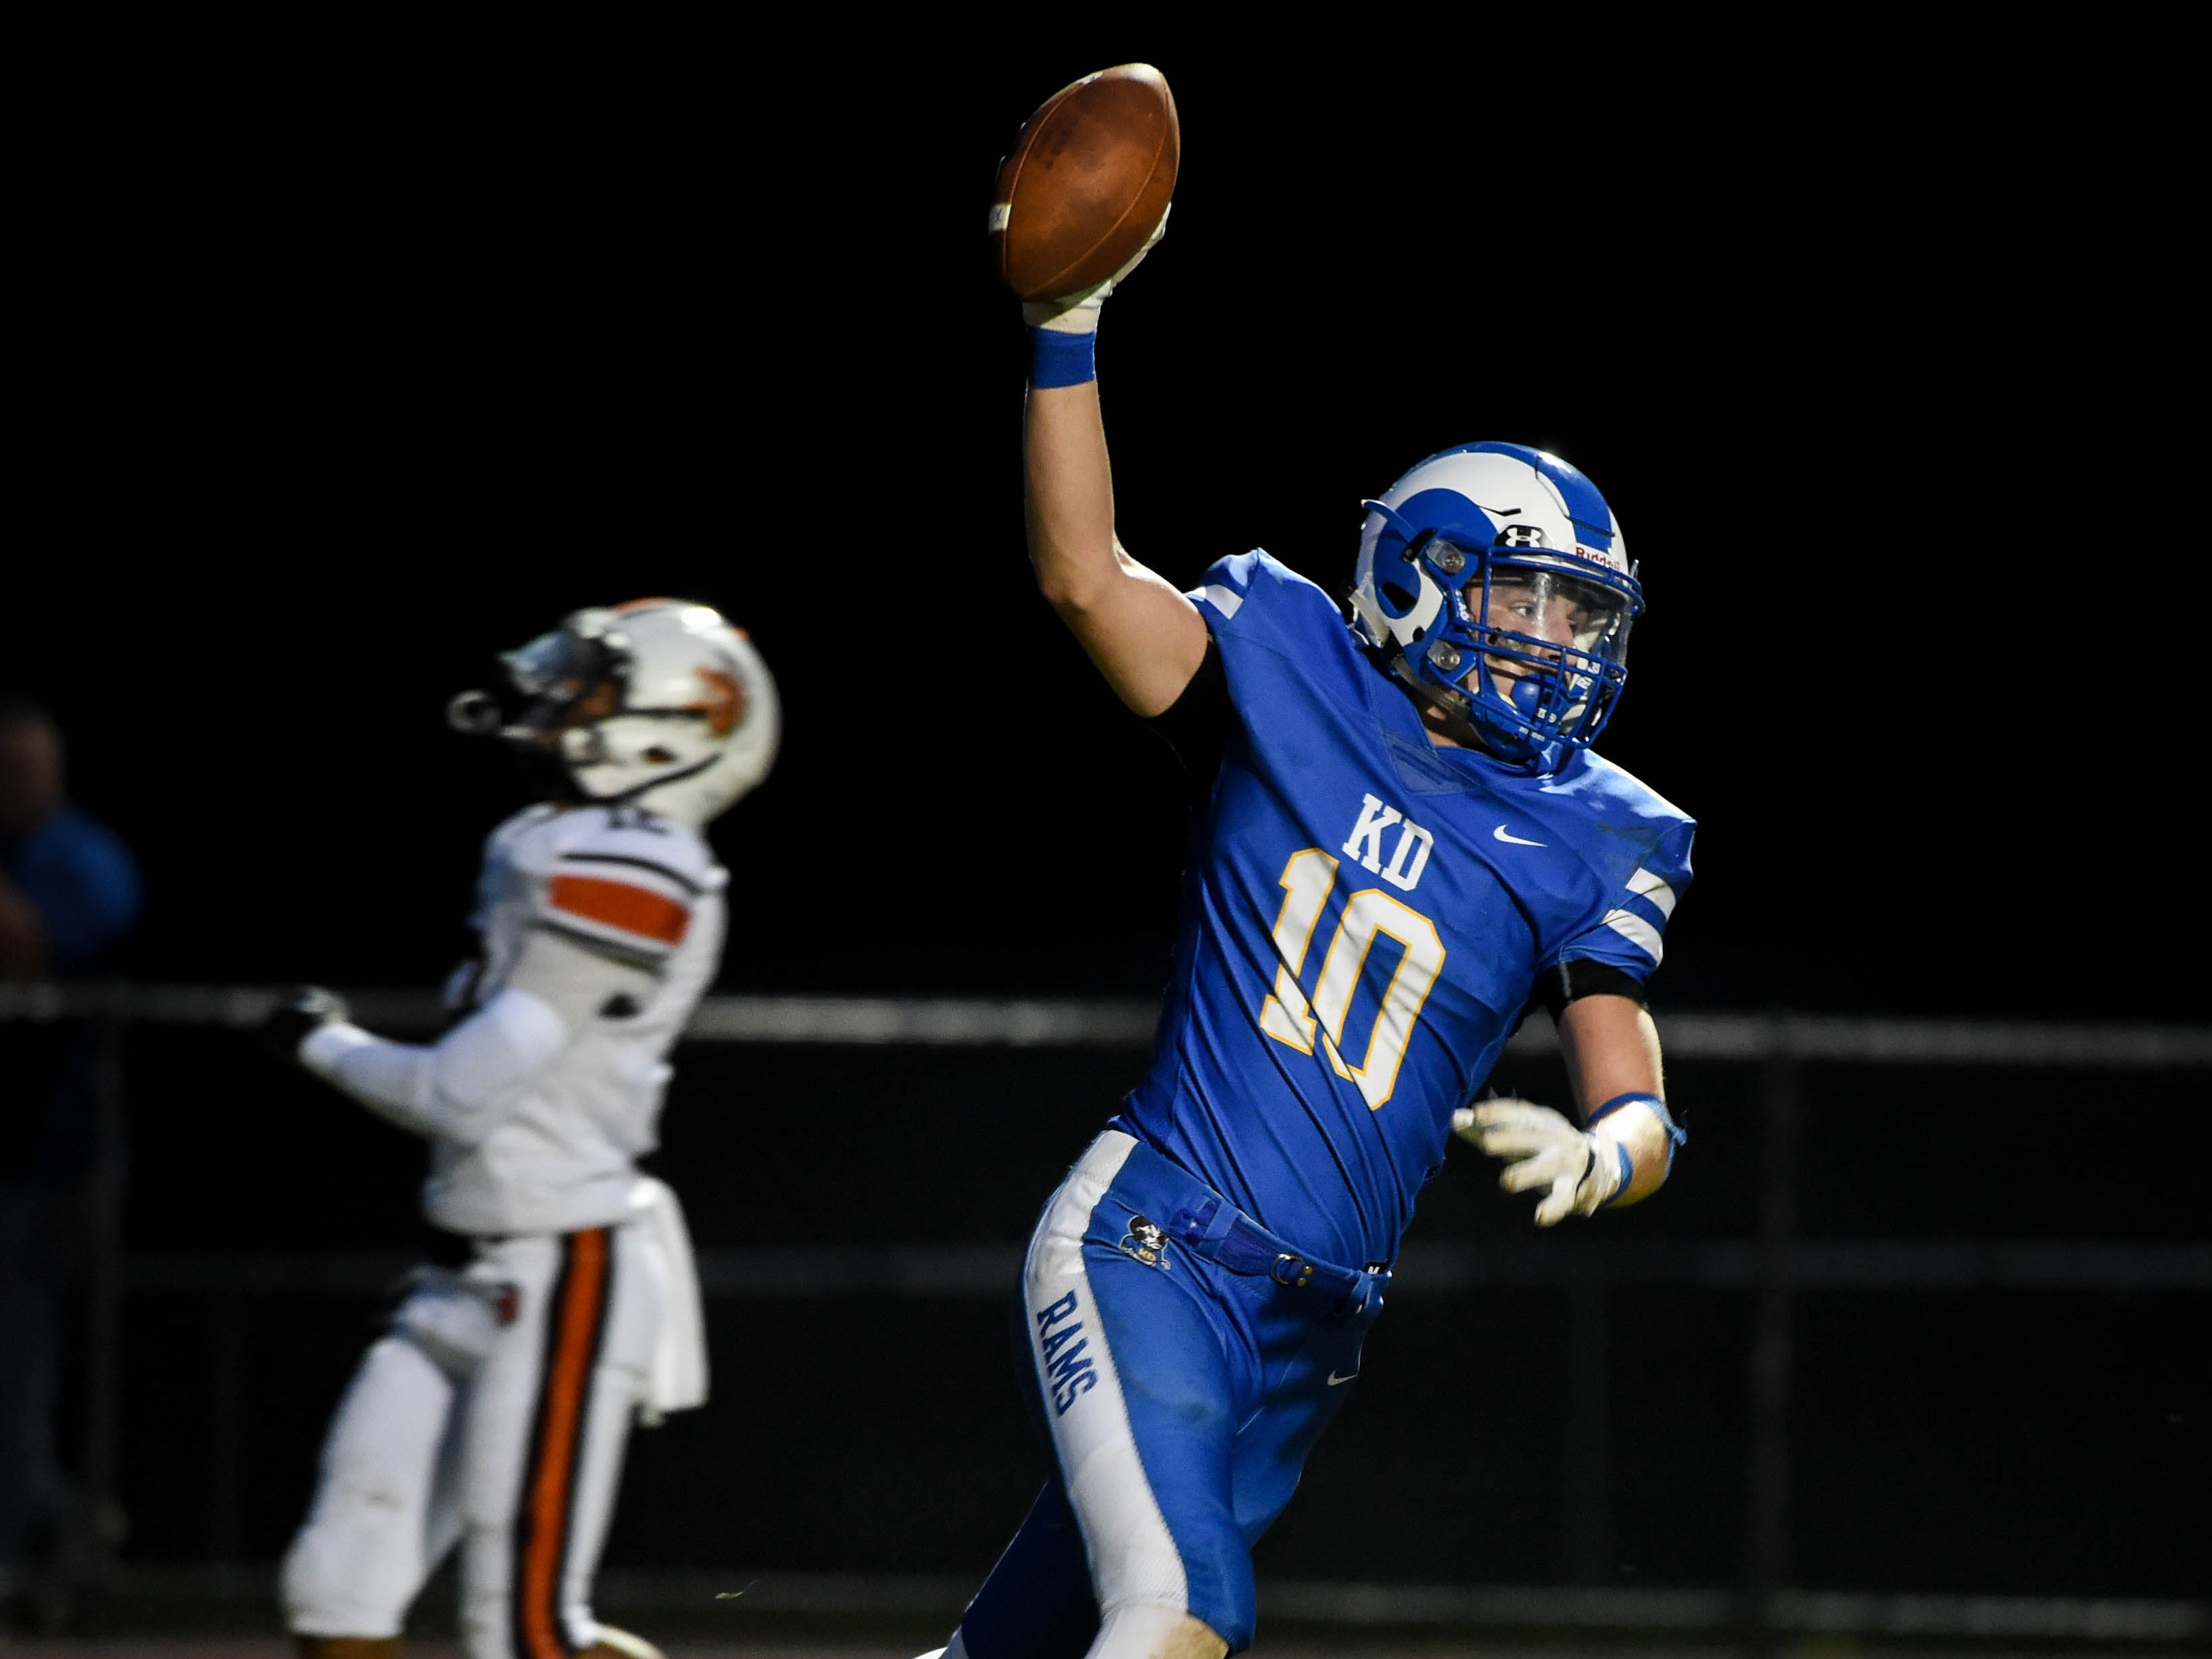 Garrett Love (10) of Kennard-Dale proudly raises the ball after scoring a touchdown, Friday, September 21, 2018. The York Suburban Trojans beat the Kennard-Dale Rams 31-25.